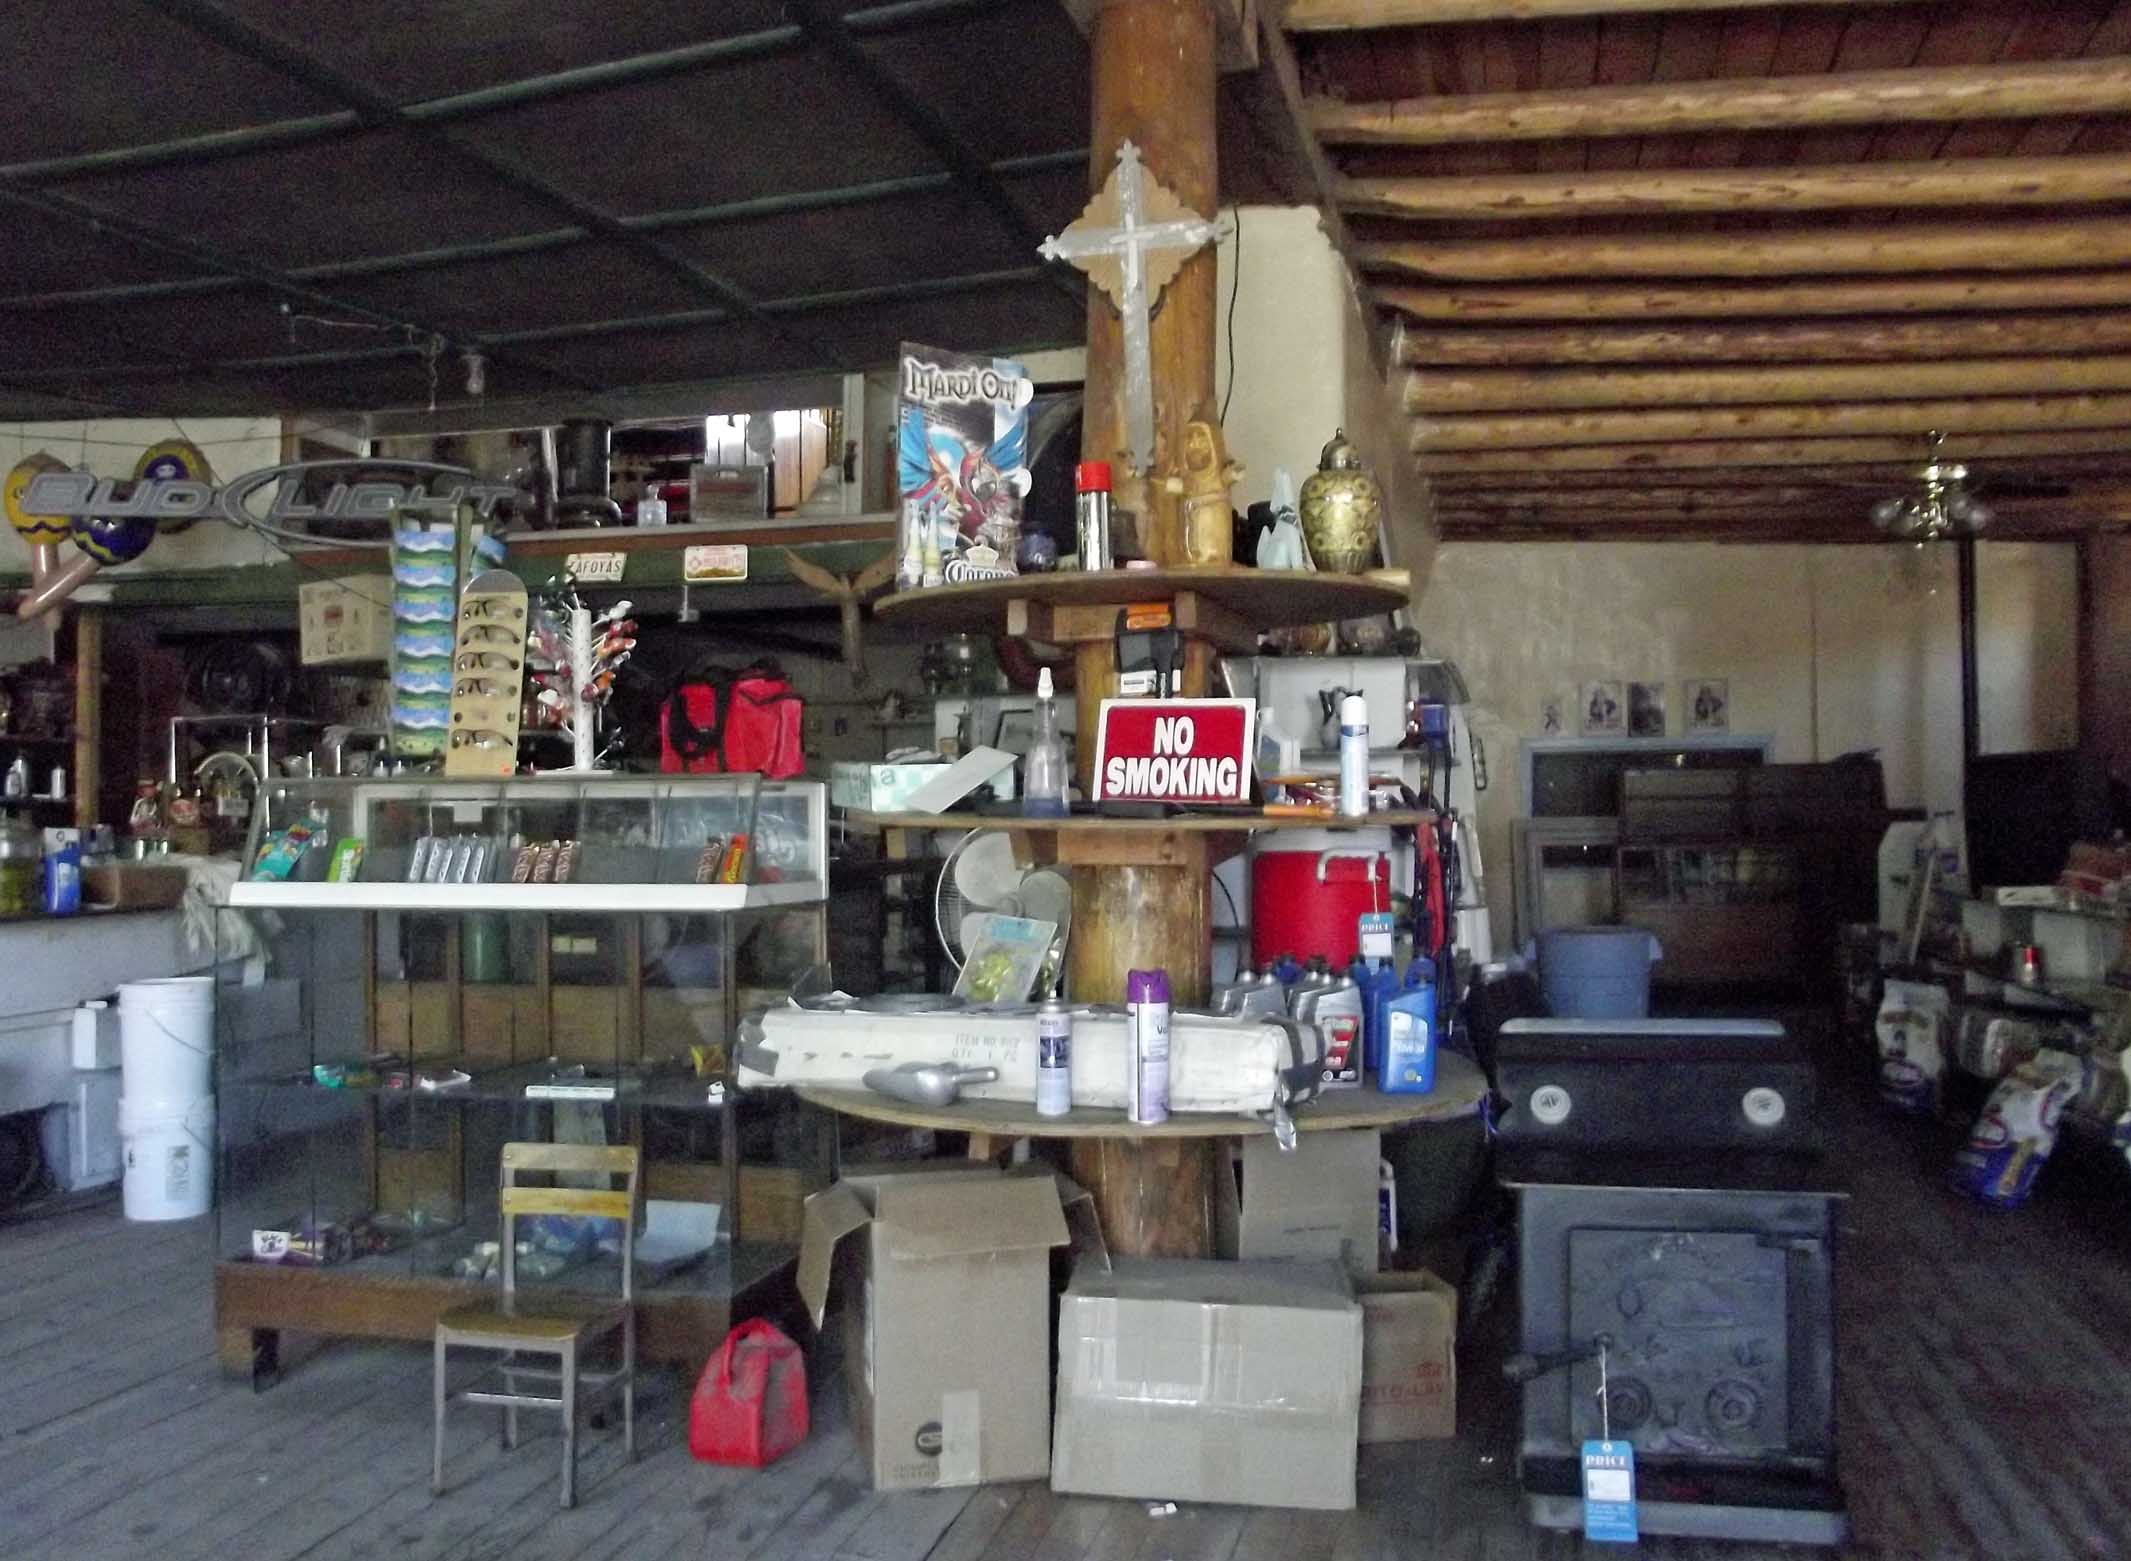 Cluttered old fashioned shop